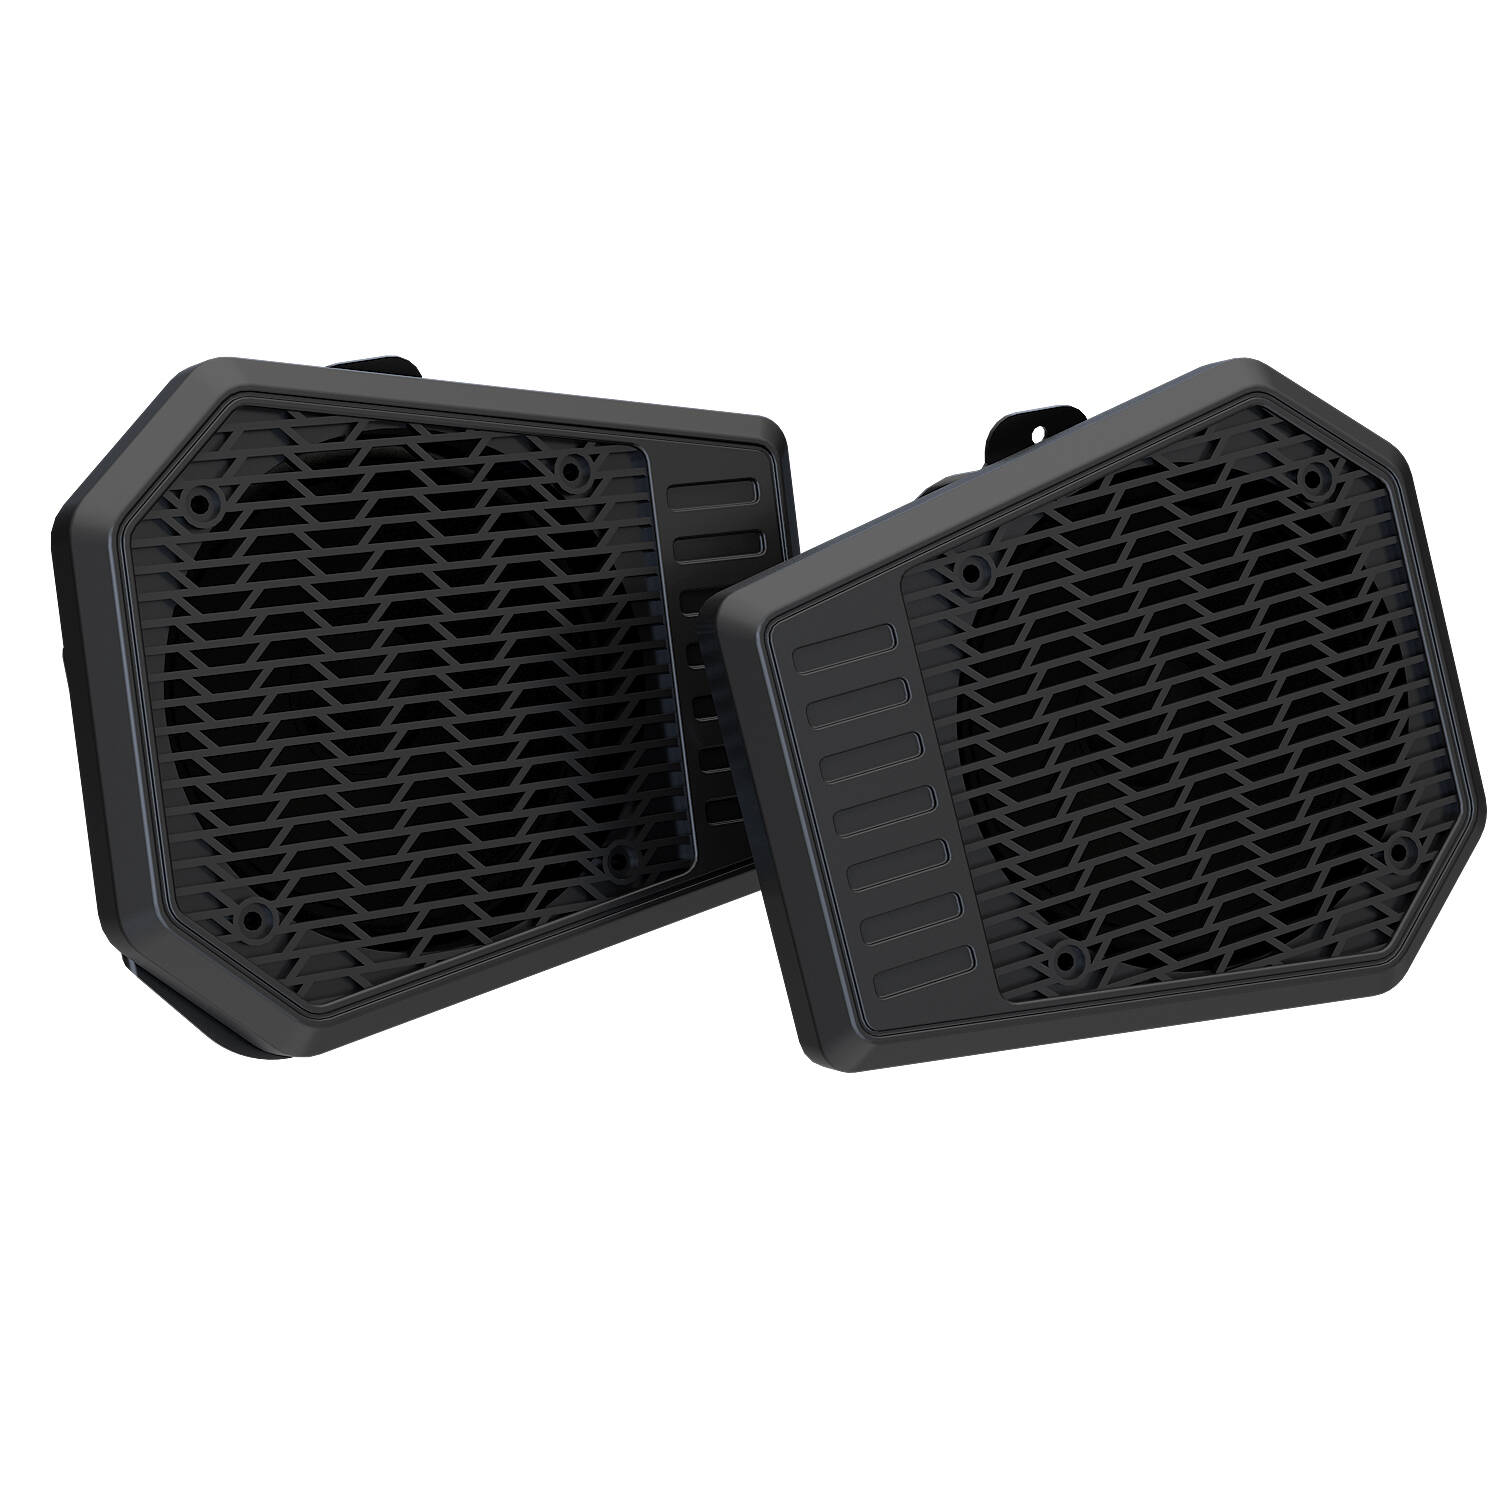 """Off-Road Audio - 2 x 6.5"""" 2-Way Rear Roof Speakers by MB Quart®"""